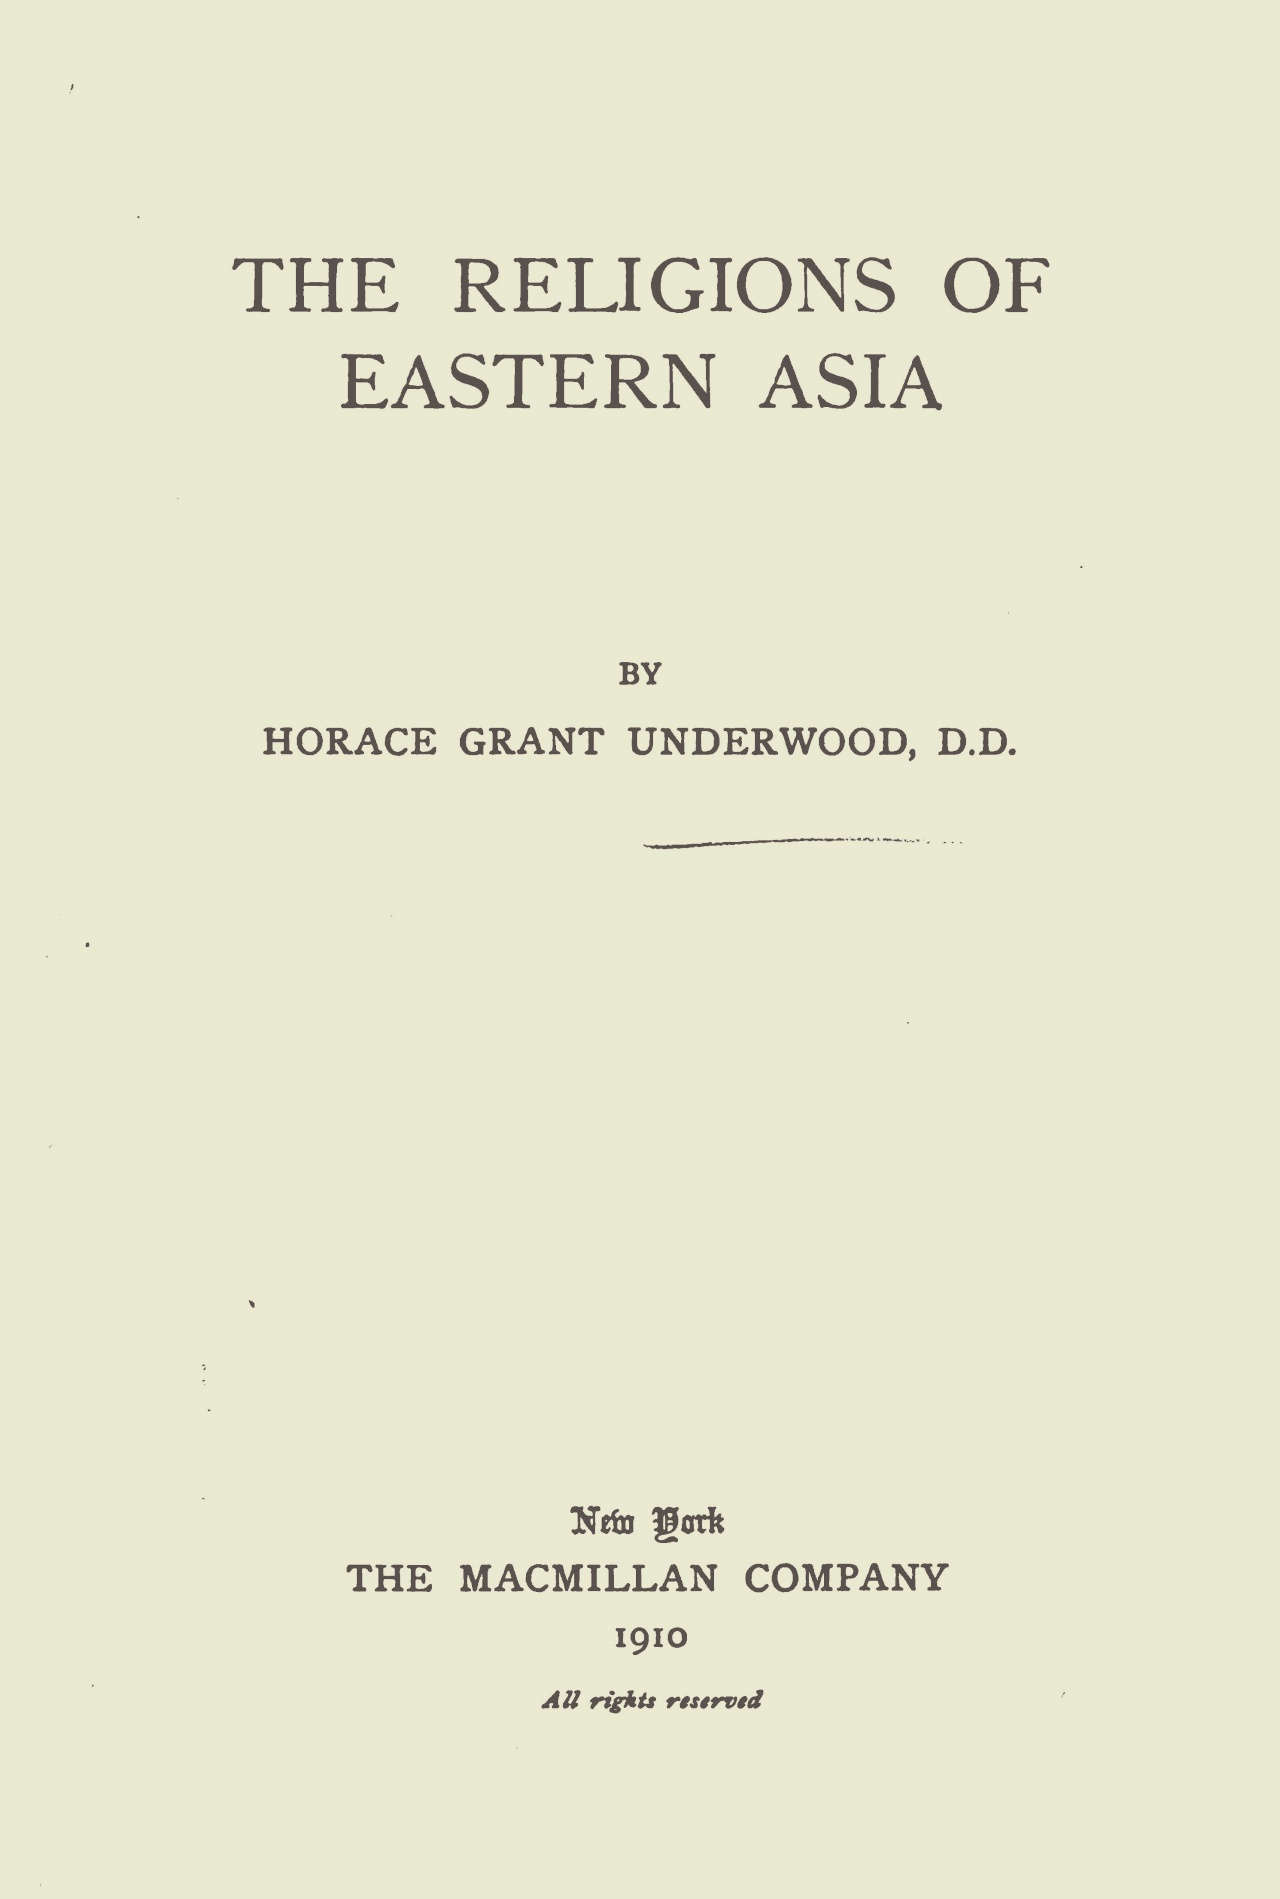 Underwood, Horace Grant, The Religions of Eastern Asia Title Page.jpg